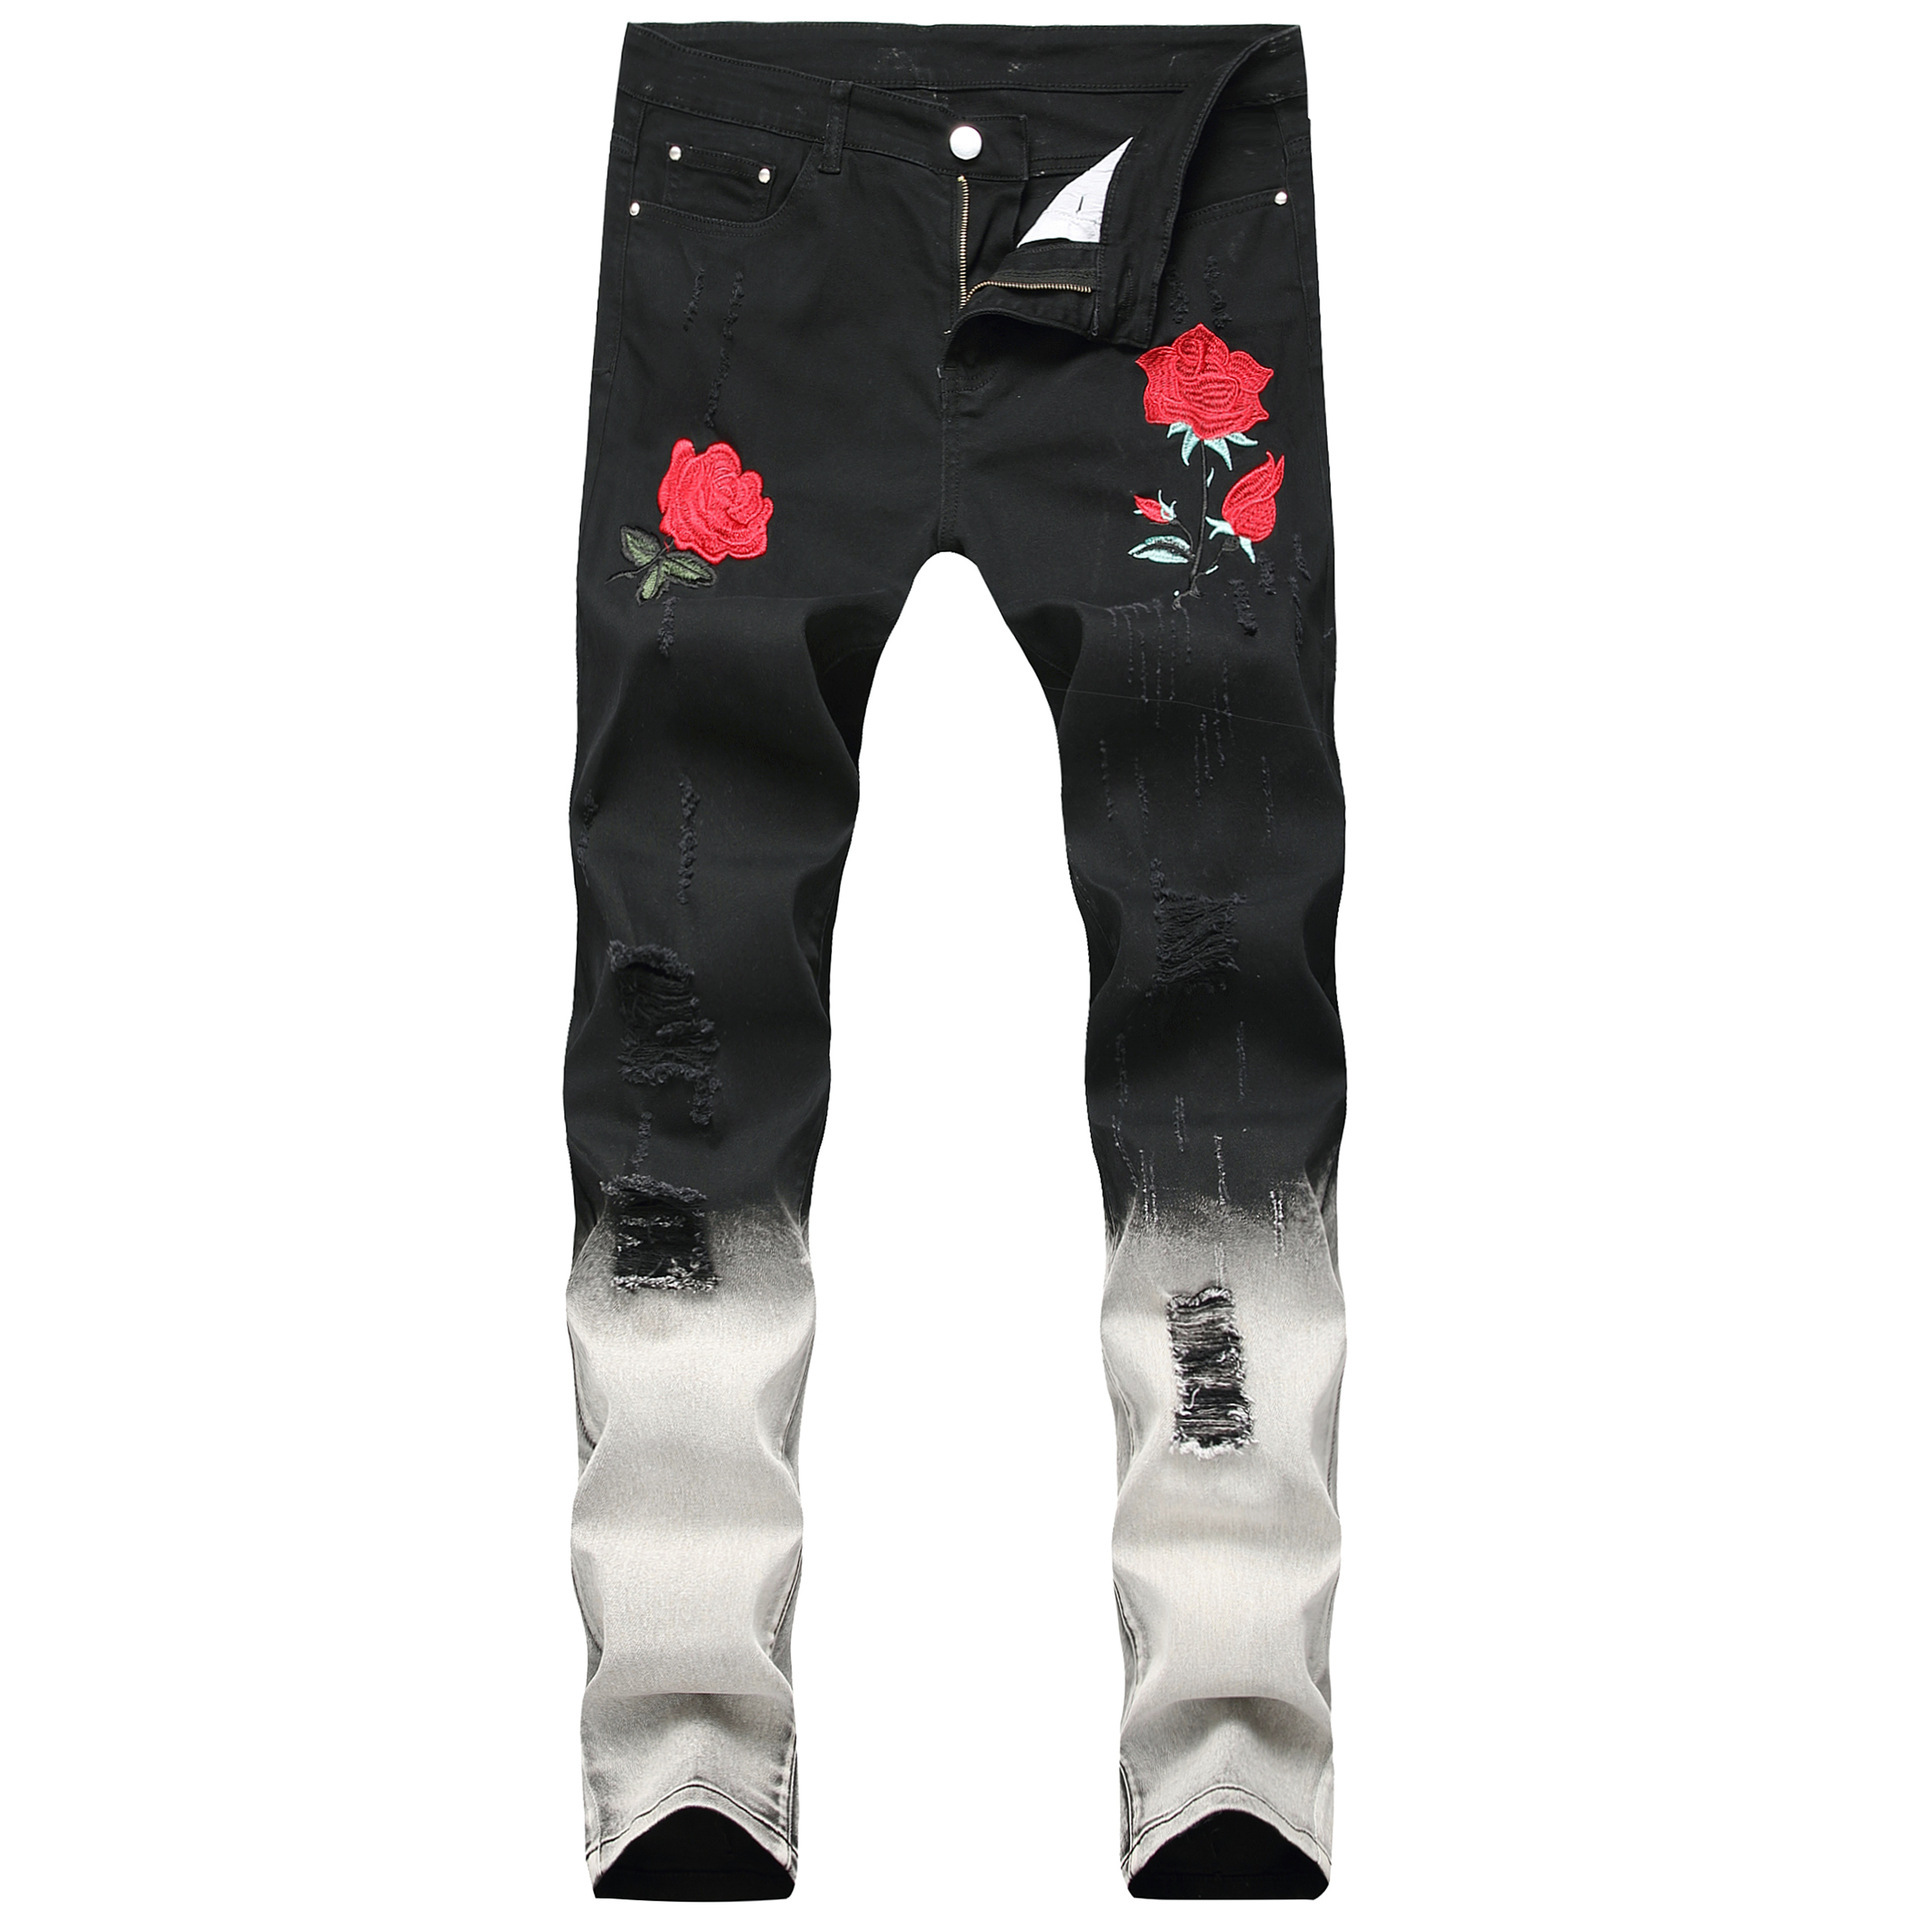 Men's Wear Embroidery Rose Jeans With Holes Casual Fashion Men's Trousers